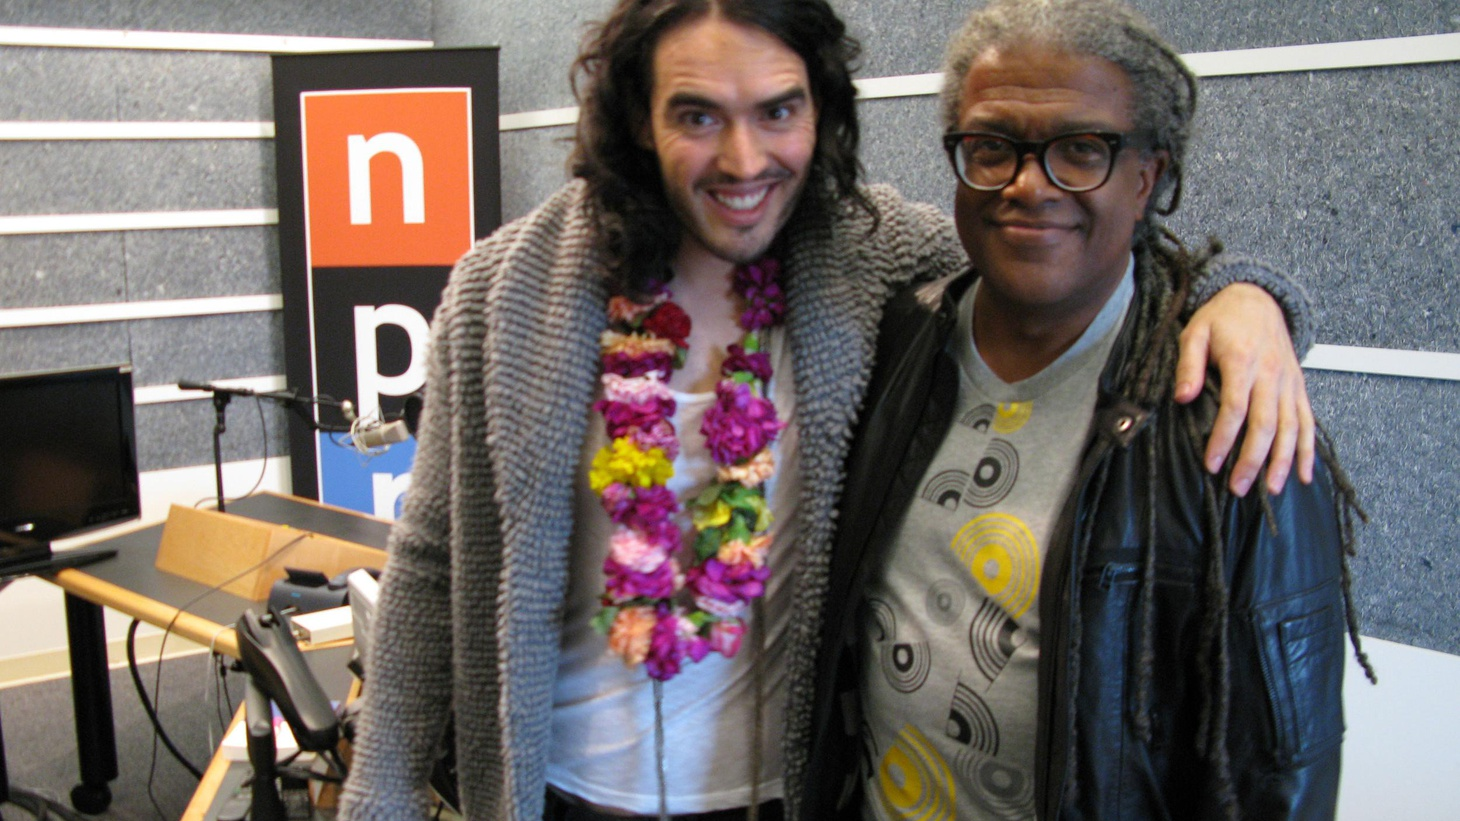 In celebration of Russell Brand hitting theaters in Arthur and as the voice of the Easter rabbit, E.B. in Hop, we re-broadcast this October 2010 interview with him...